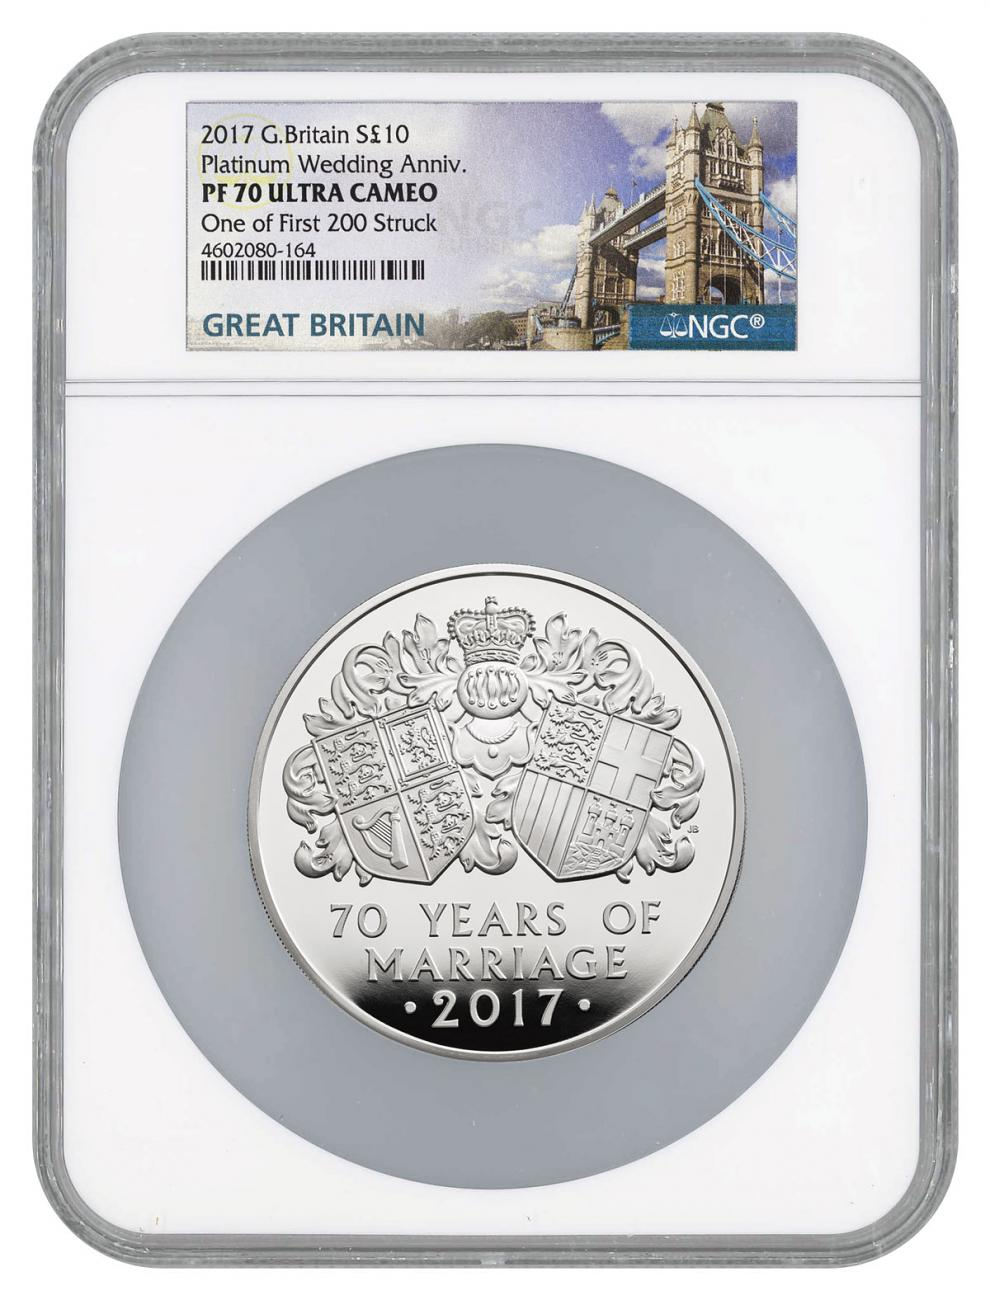 2017 Great Britain 70th Wedding Anniversary 5 oz Silver Proof £10 Coin Scarce and Unique Coin Division NGC PF70 UC One of First 200 Struck Great Britain Label